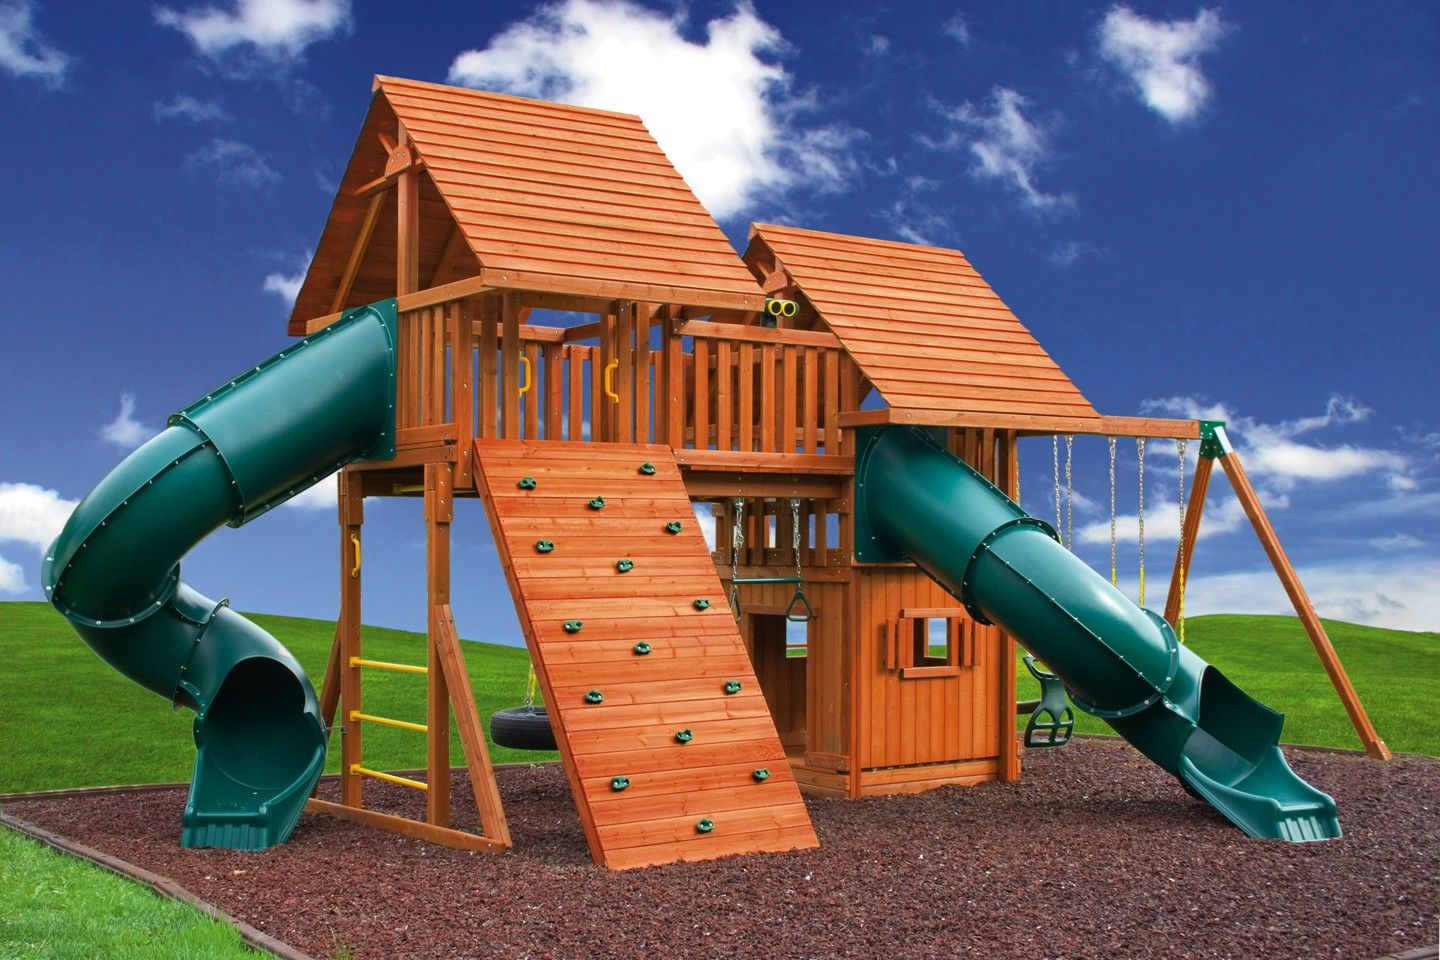 fantasy 5 wooden playset jungle gym cedar swing sets and clubhouses